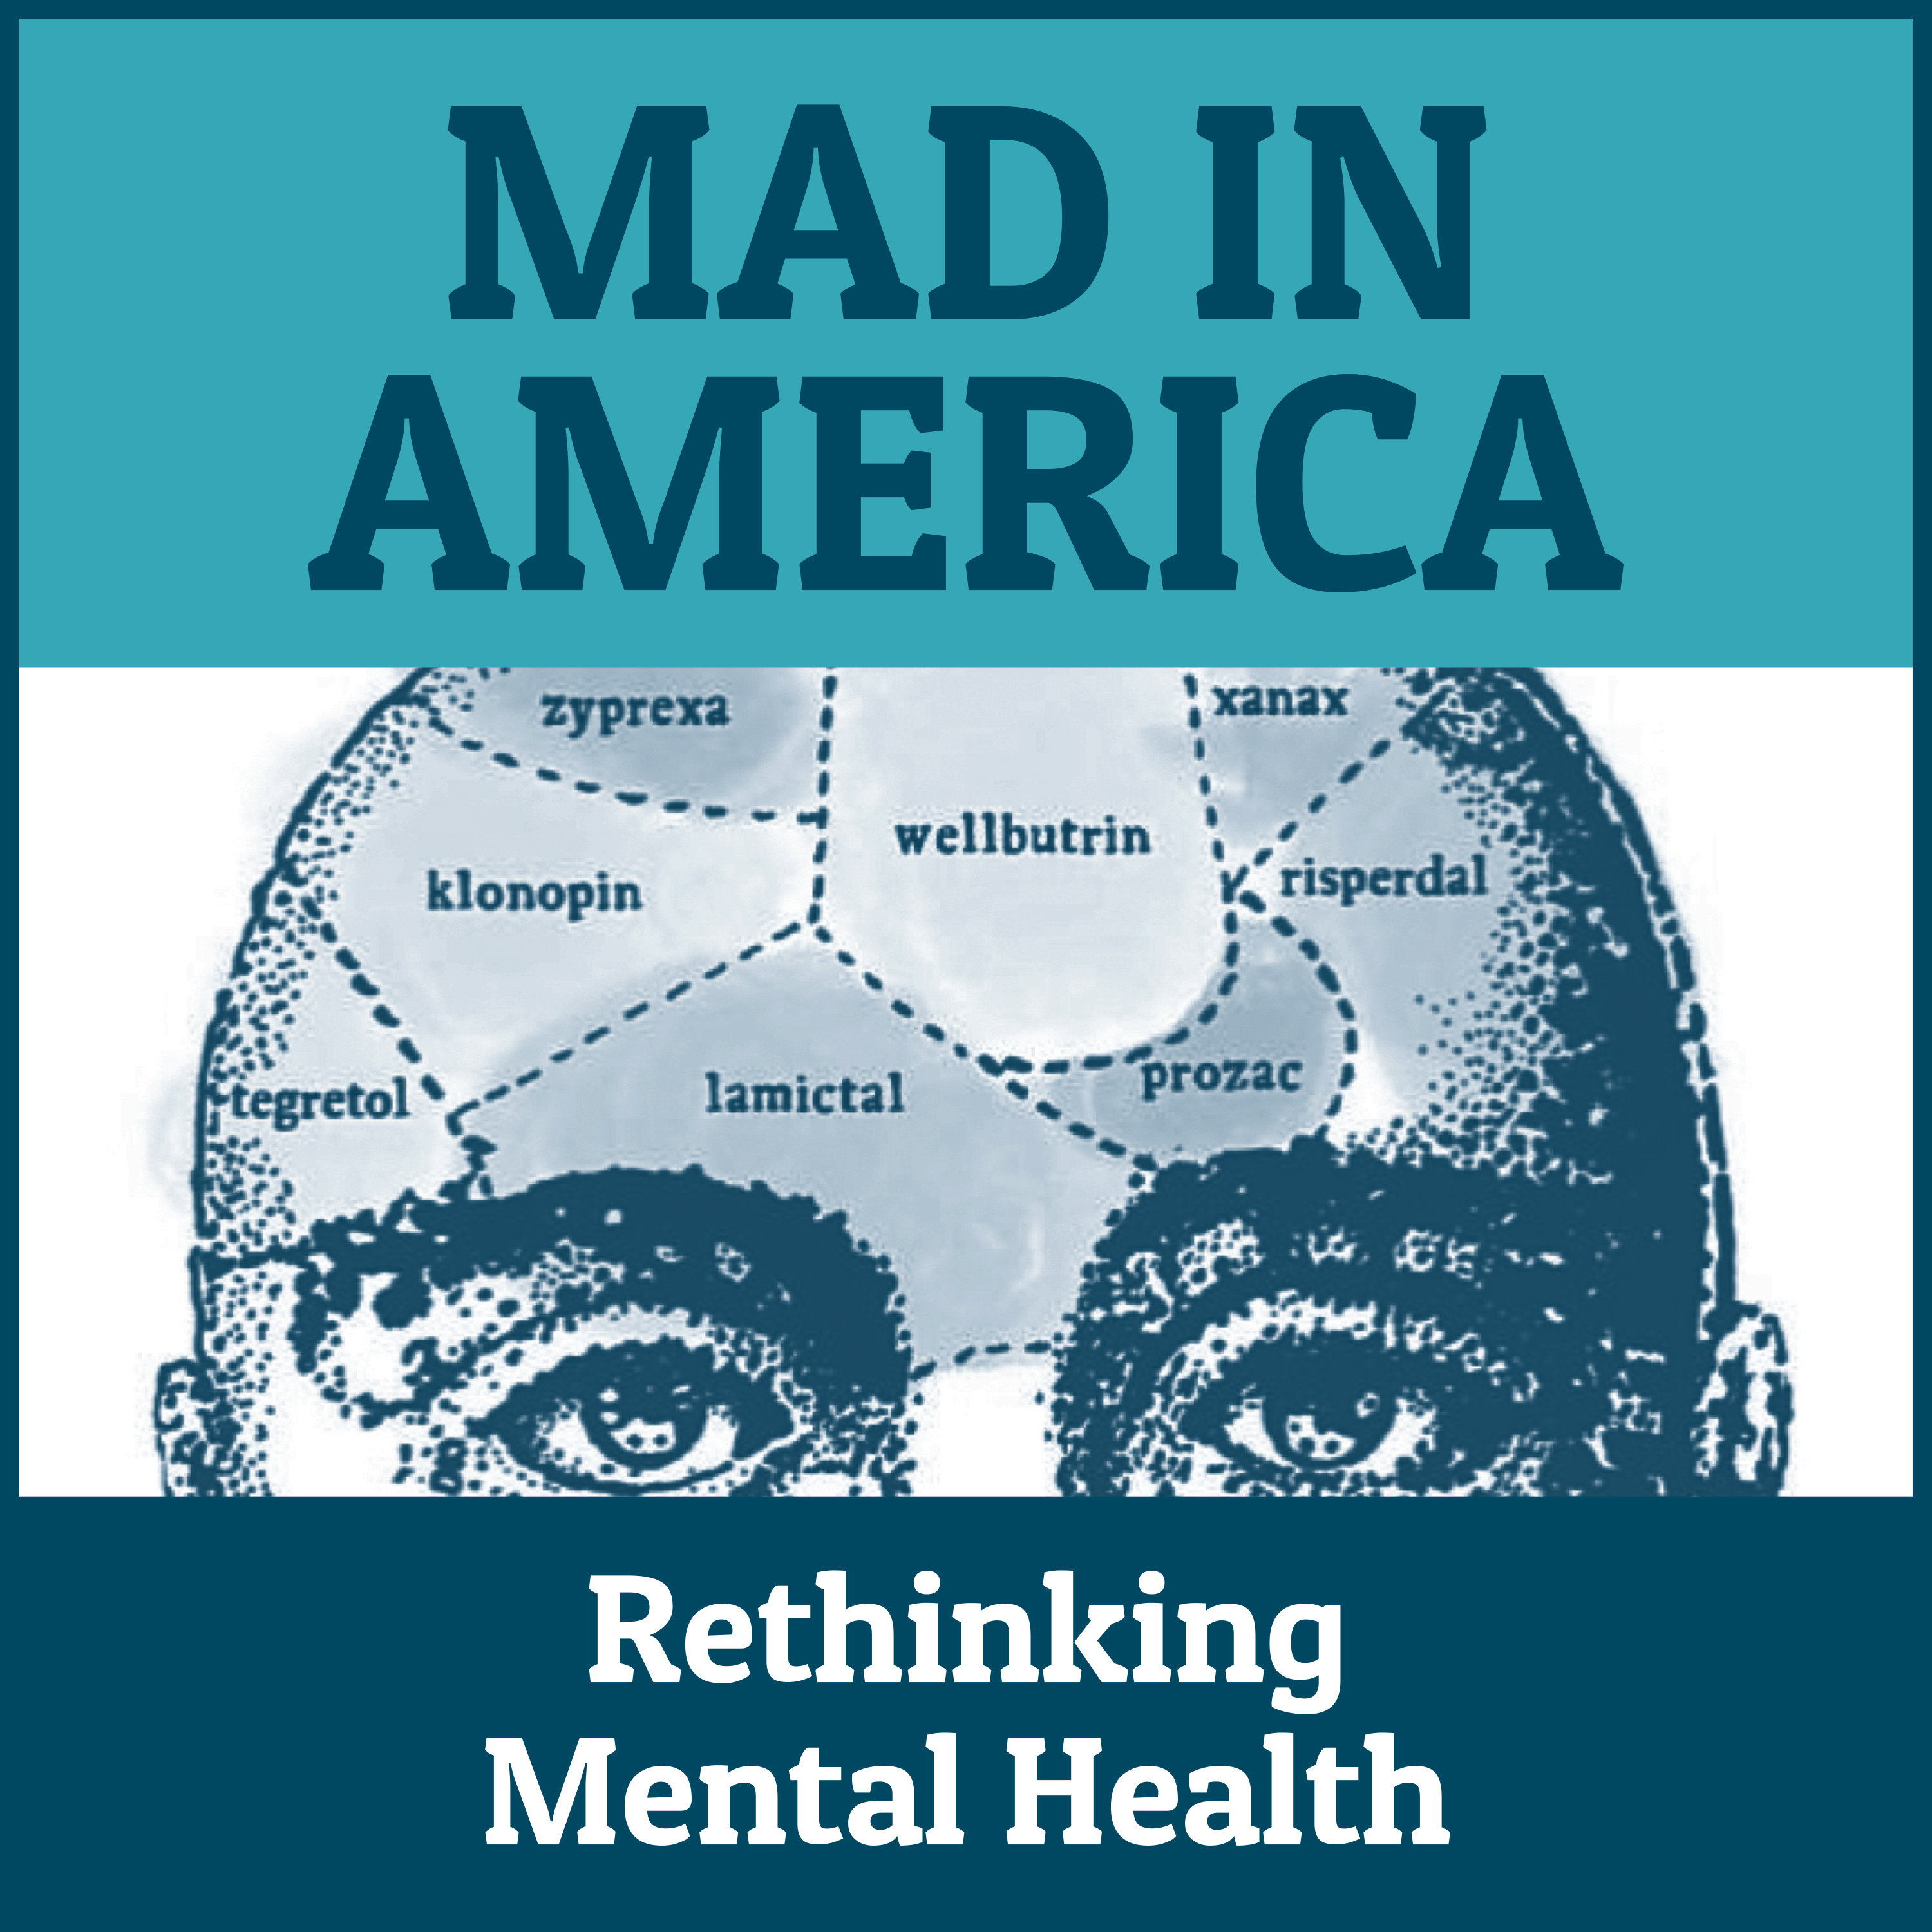 Mad in America: Rethinking Mental Health - Psychiatric Drug Withdrawal - Post Withdrawal Experiences